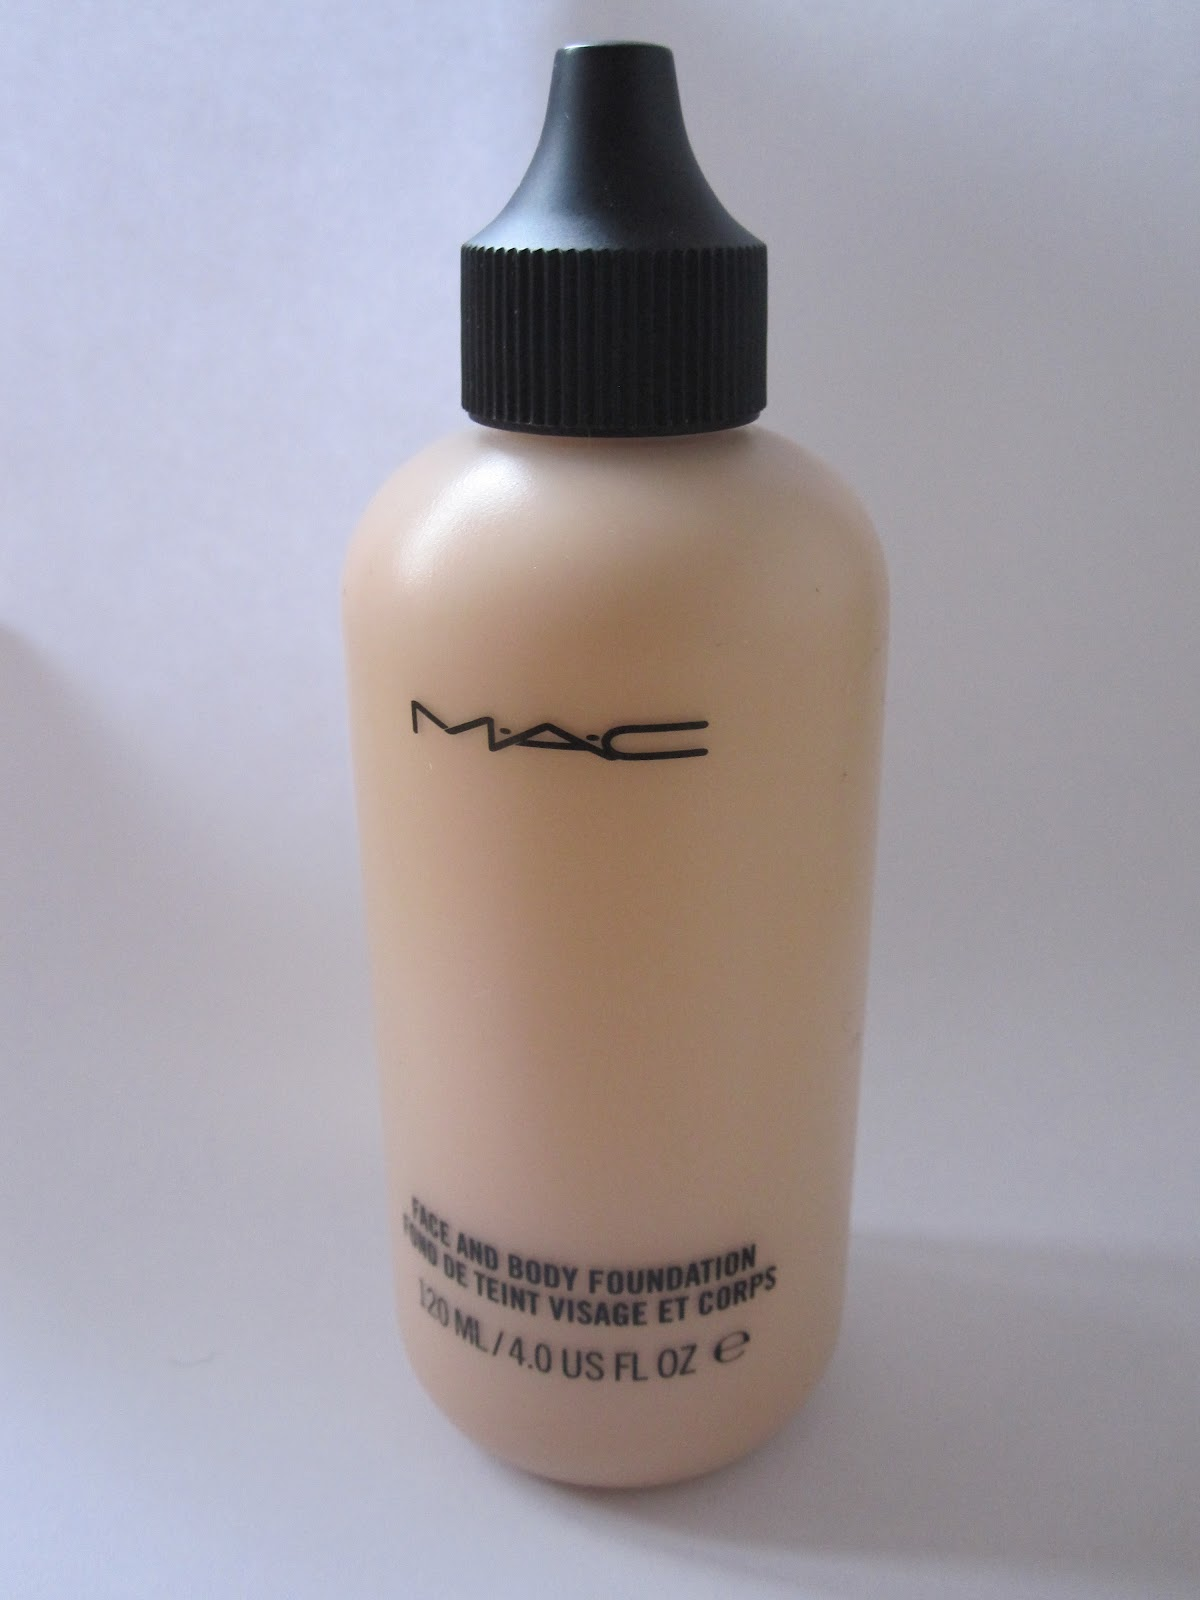 Made You Look: MAC Face and Body